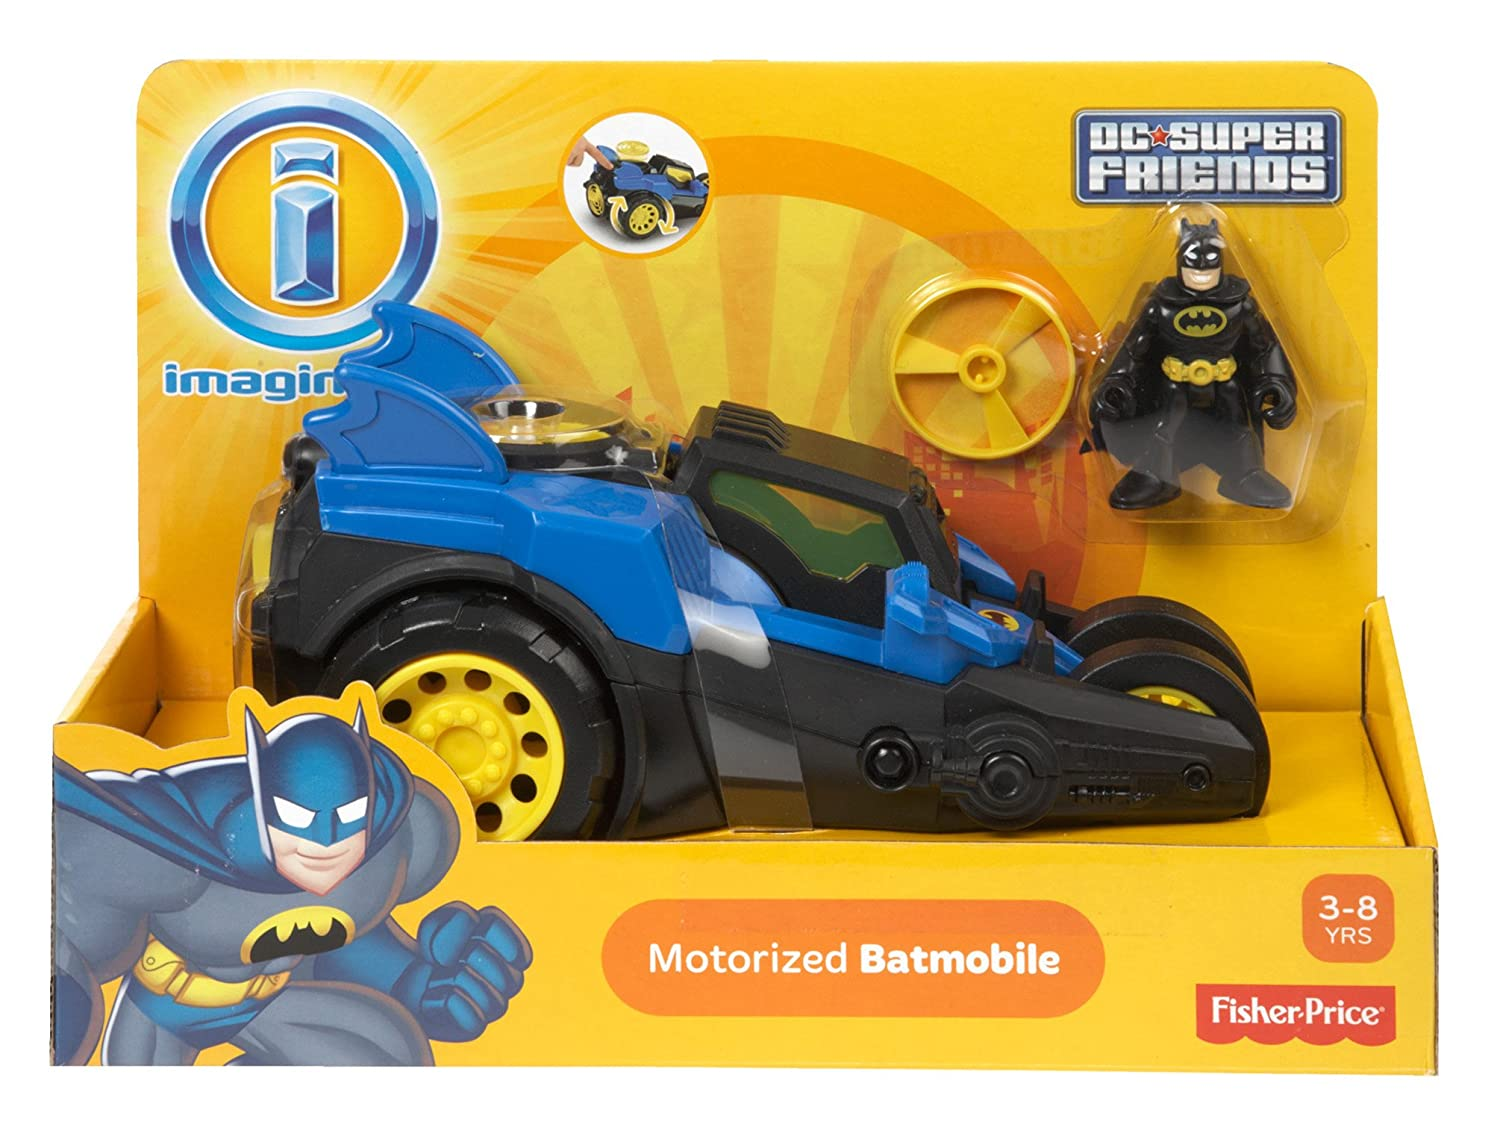 Batmobile Toy Imaginext Motorized Batmobile Toys